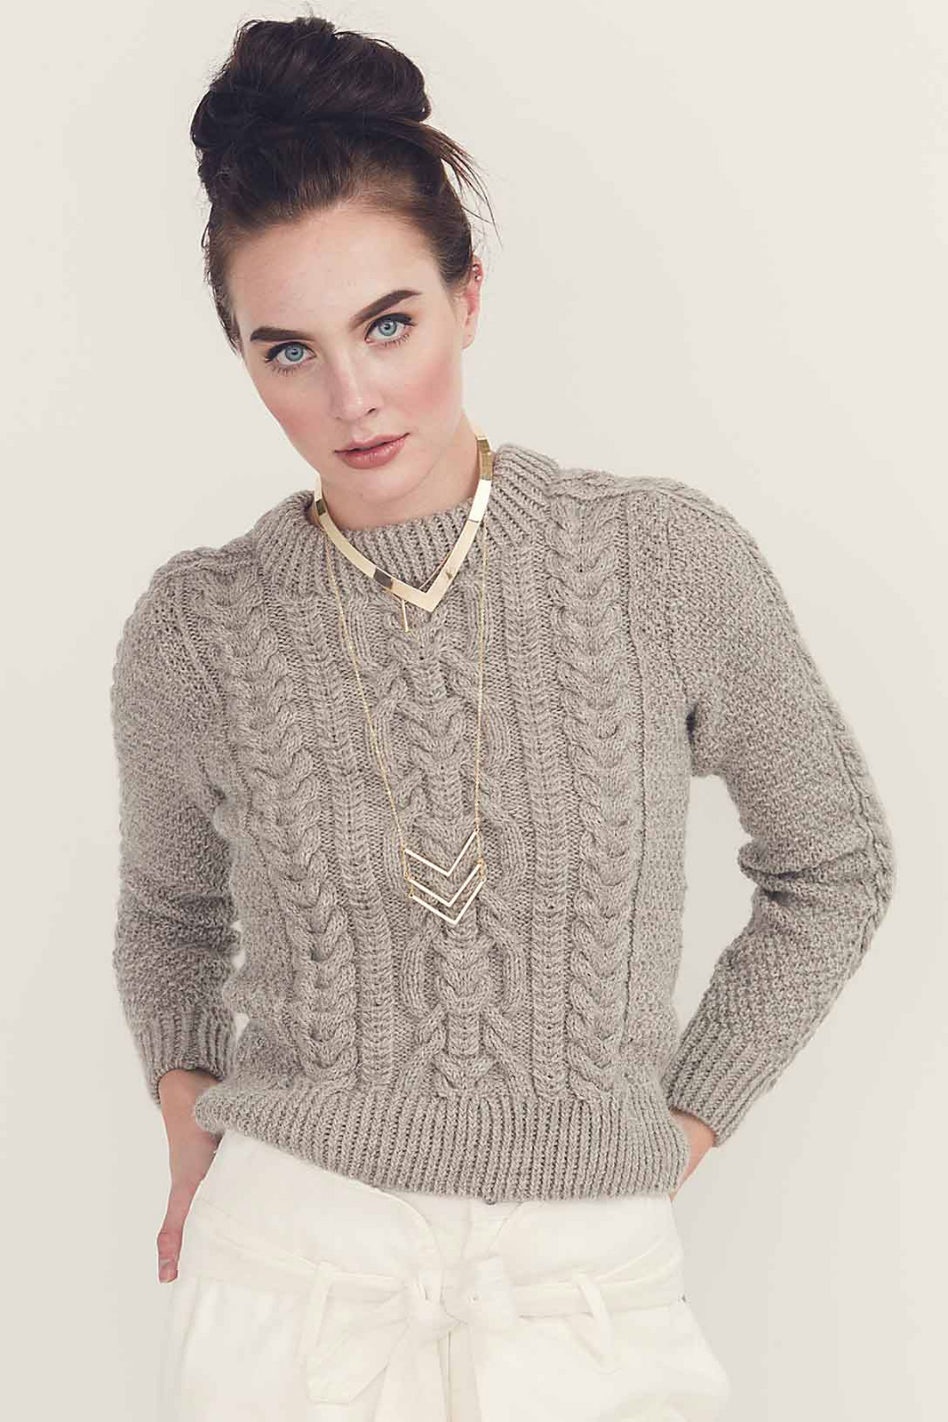 Eira Pullover by Linda Marveng